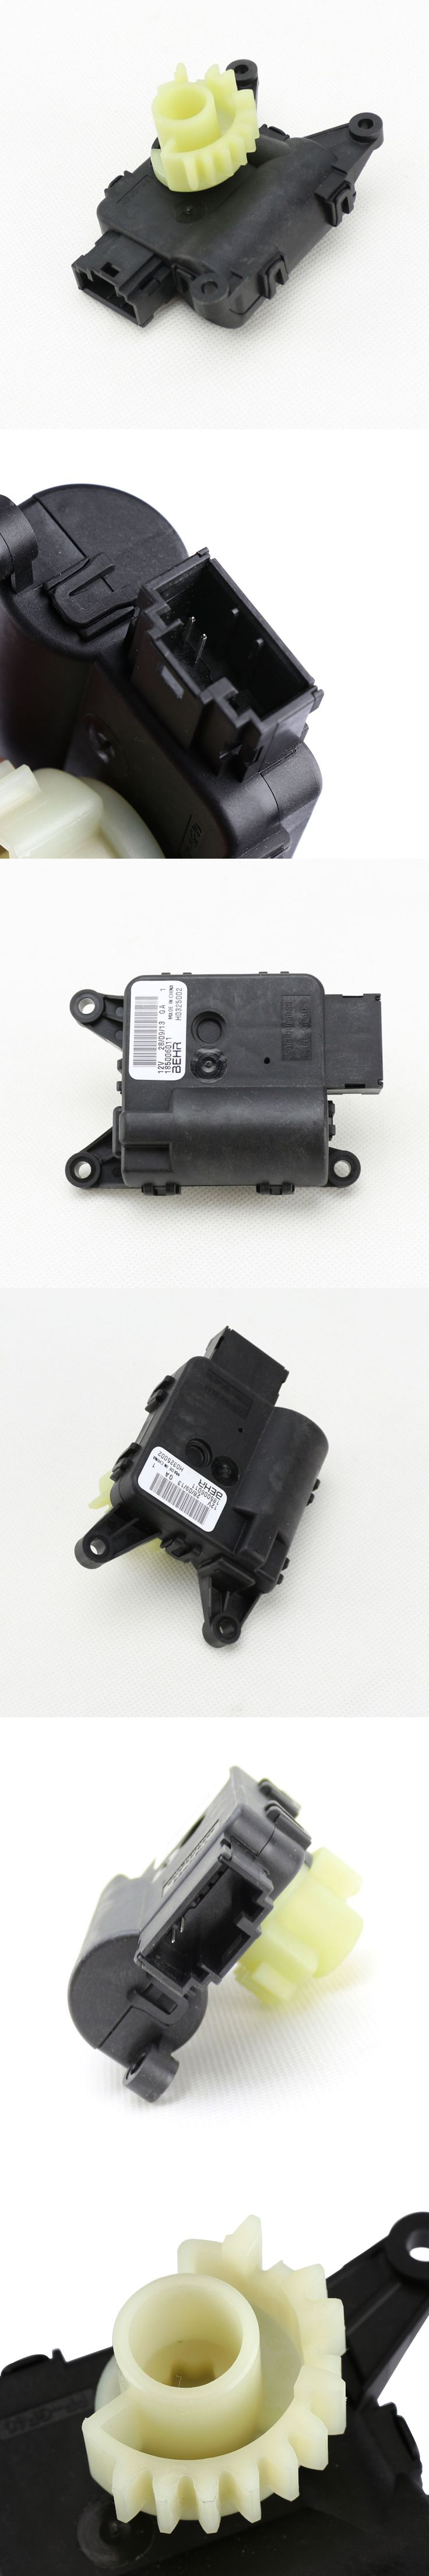 OEM Air Heater Vent OEM Recirculation Flap Motor for VW Golf Jetta MK5 MK6 Passat Tiguan